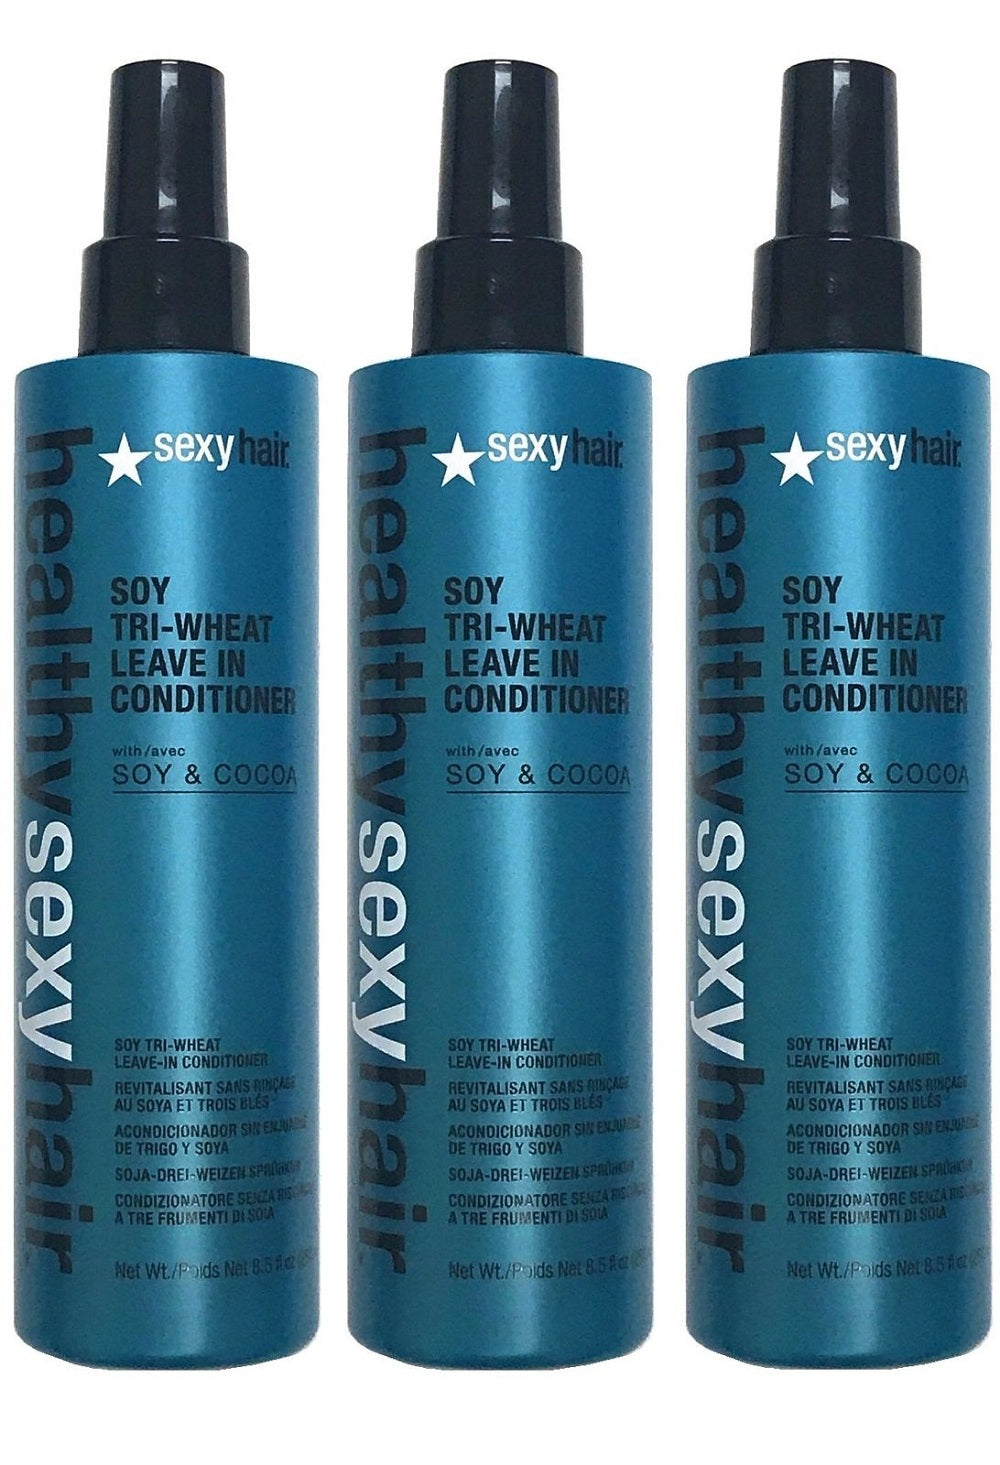 Healthy sexy hair soy leave in